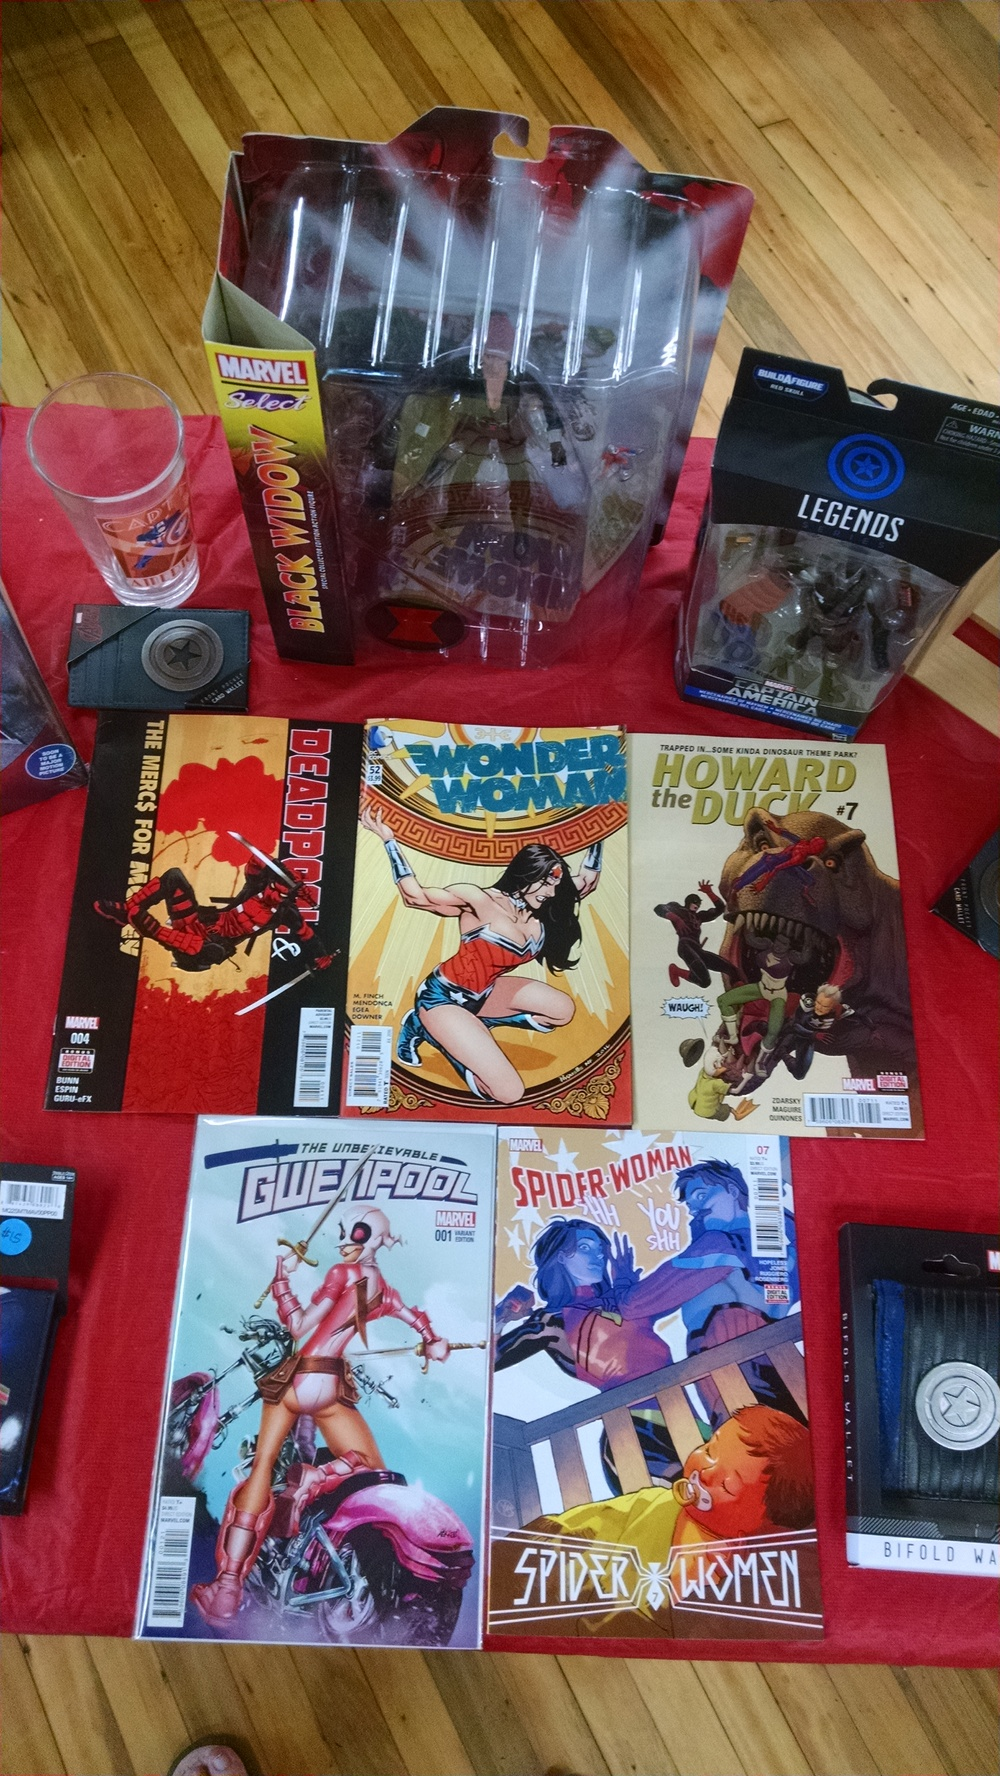 Thanks again to Comic Envy for the pictures! Buy comics there and support your local businesses!